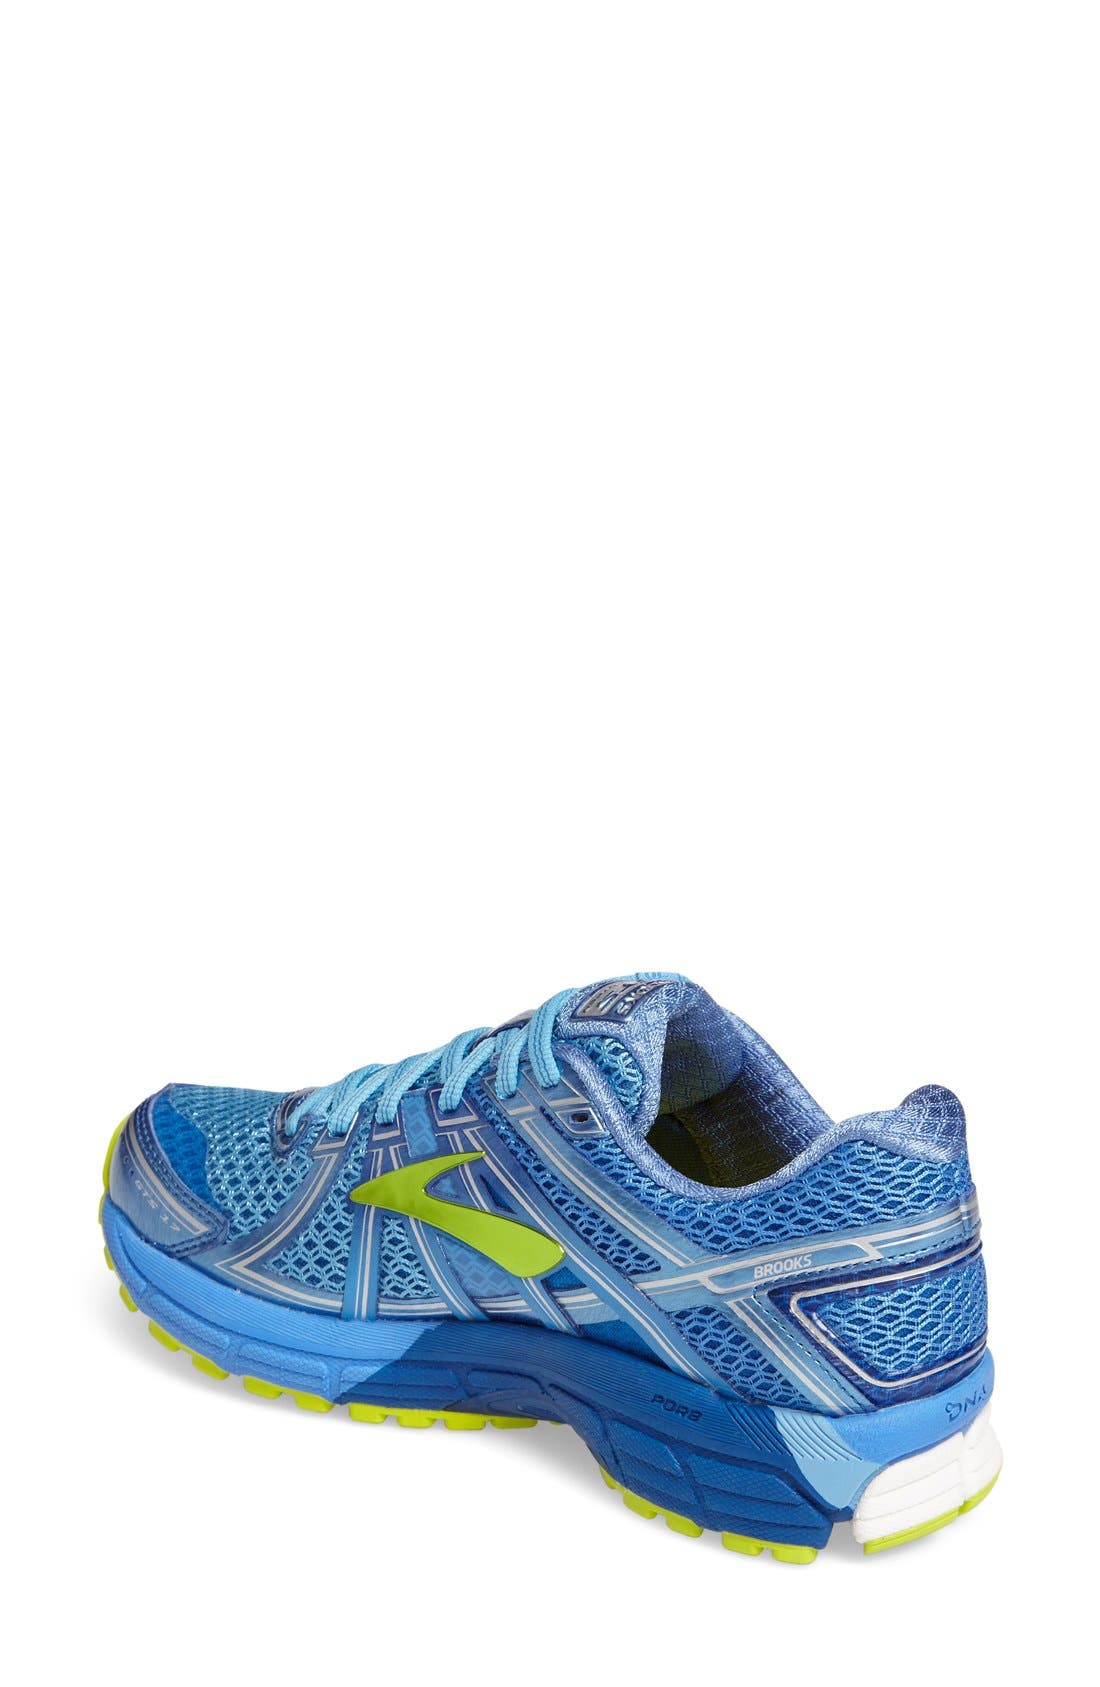 Adrenaline GTS 17 Running Shoe,                             Alternate thumbnail 19, color,